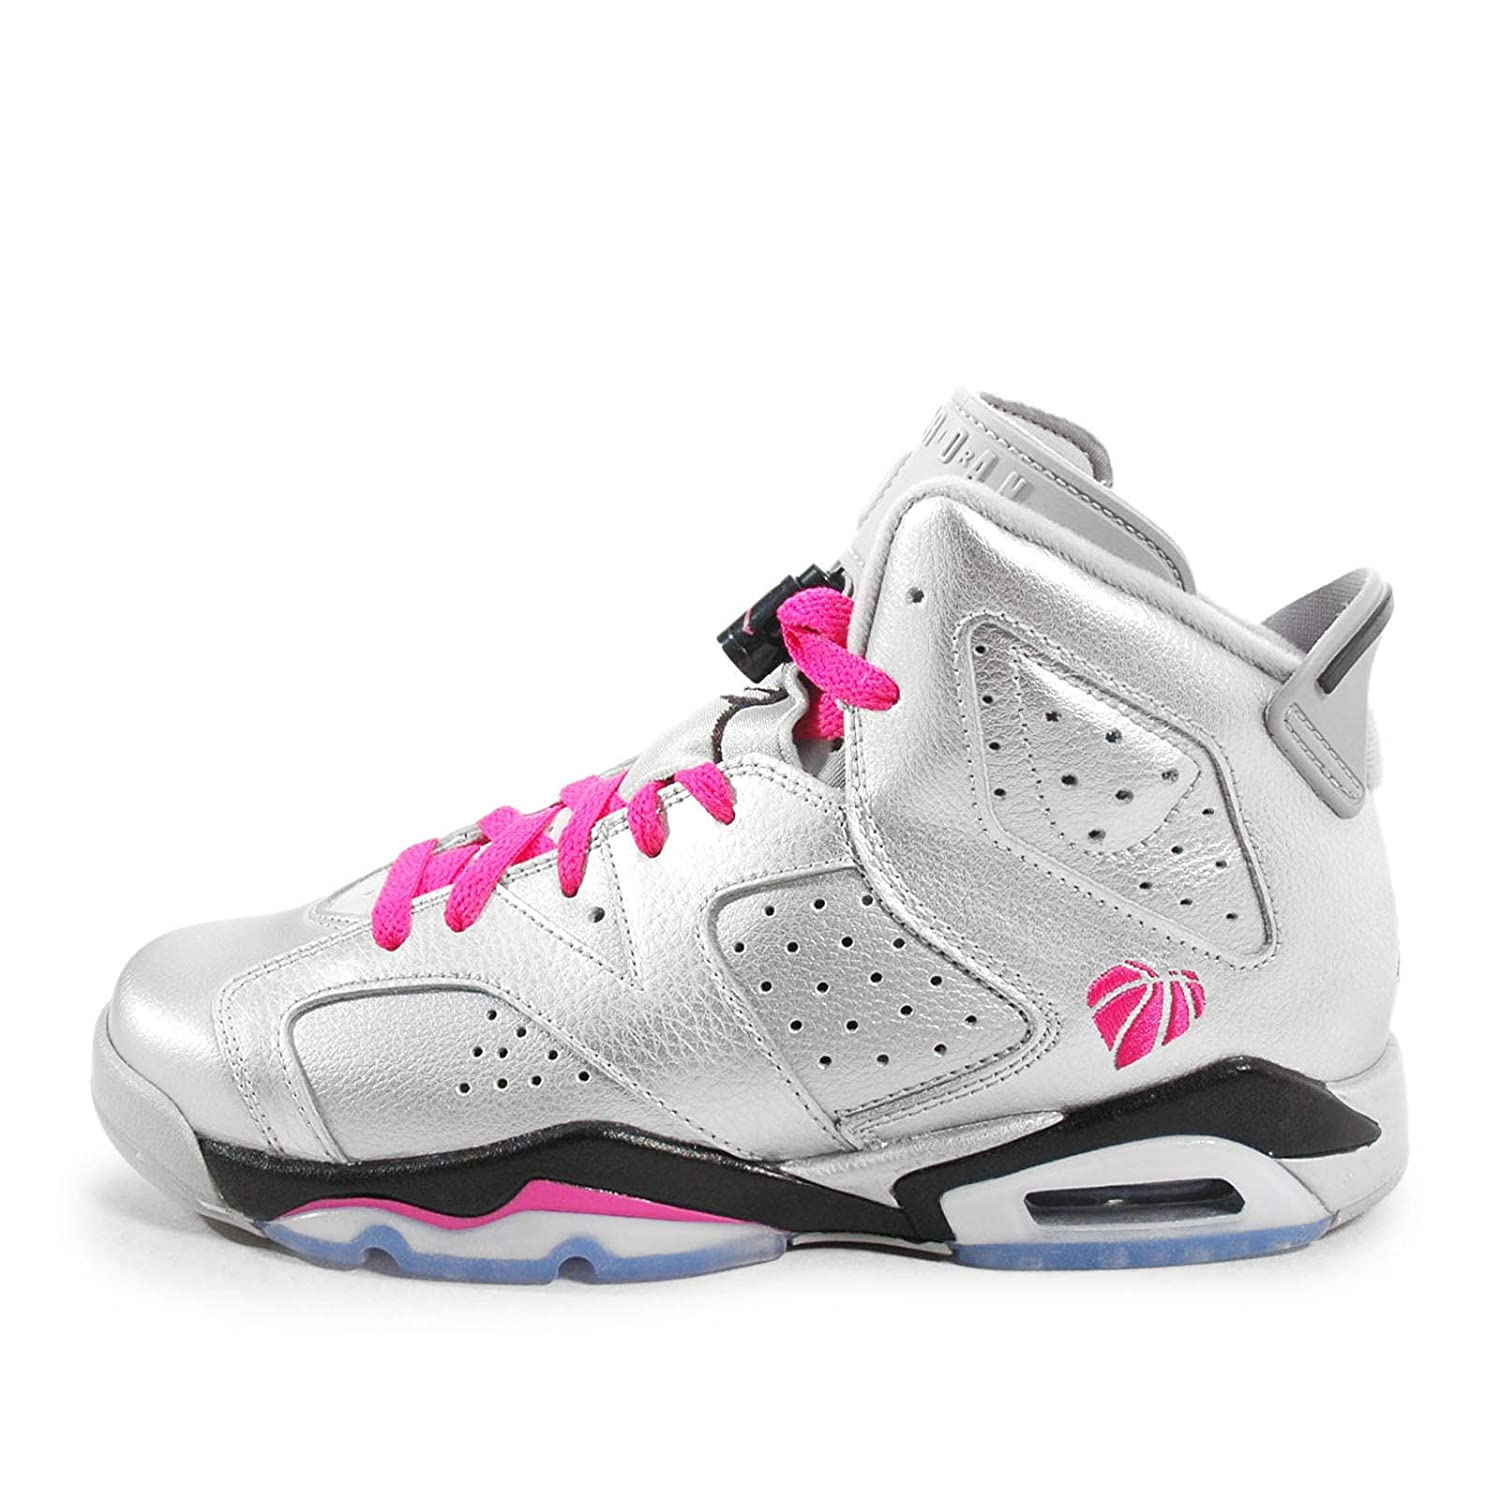 ナイキ(NIKE) Air Jordan 6 Retro GG Valentines Day シルバー ピンク 543390-009 (5.5Y(24cm)) [並行輸入品] B01IIJXIZI